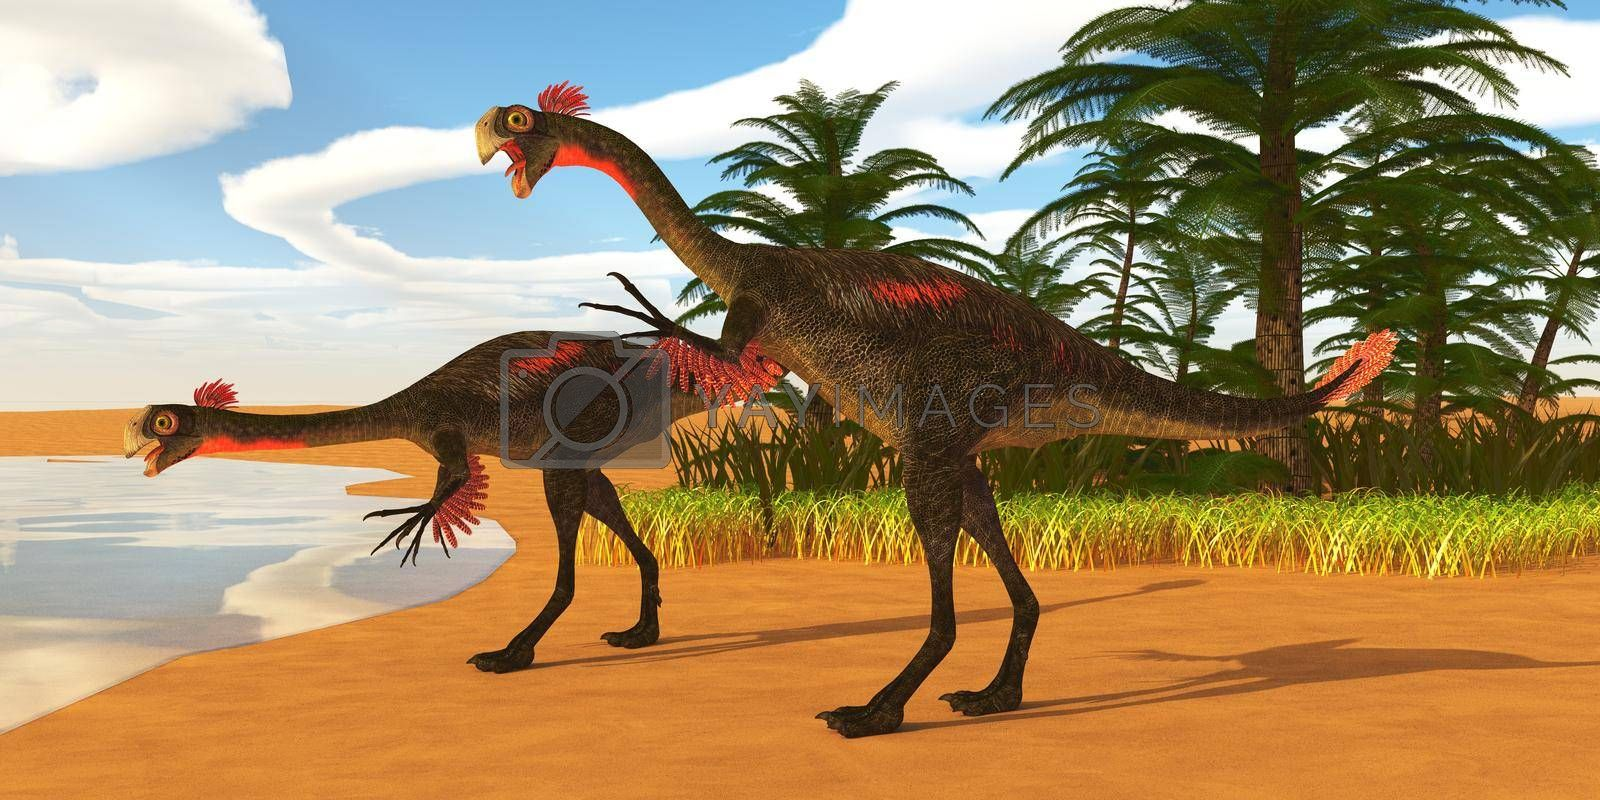 Gigantoraptor theropod dinosaurs come down to a lake to drink in Mongolia, China during the Cretaceous Period.